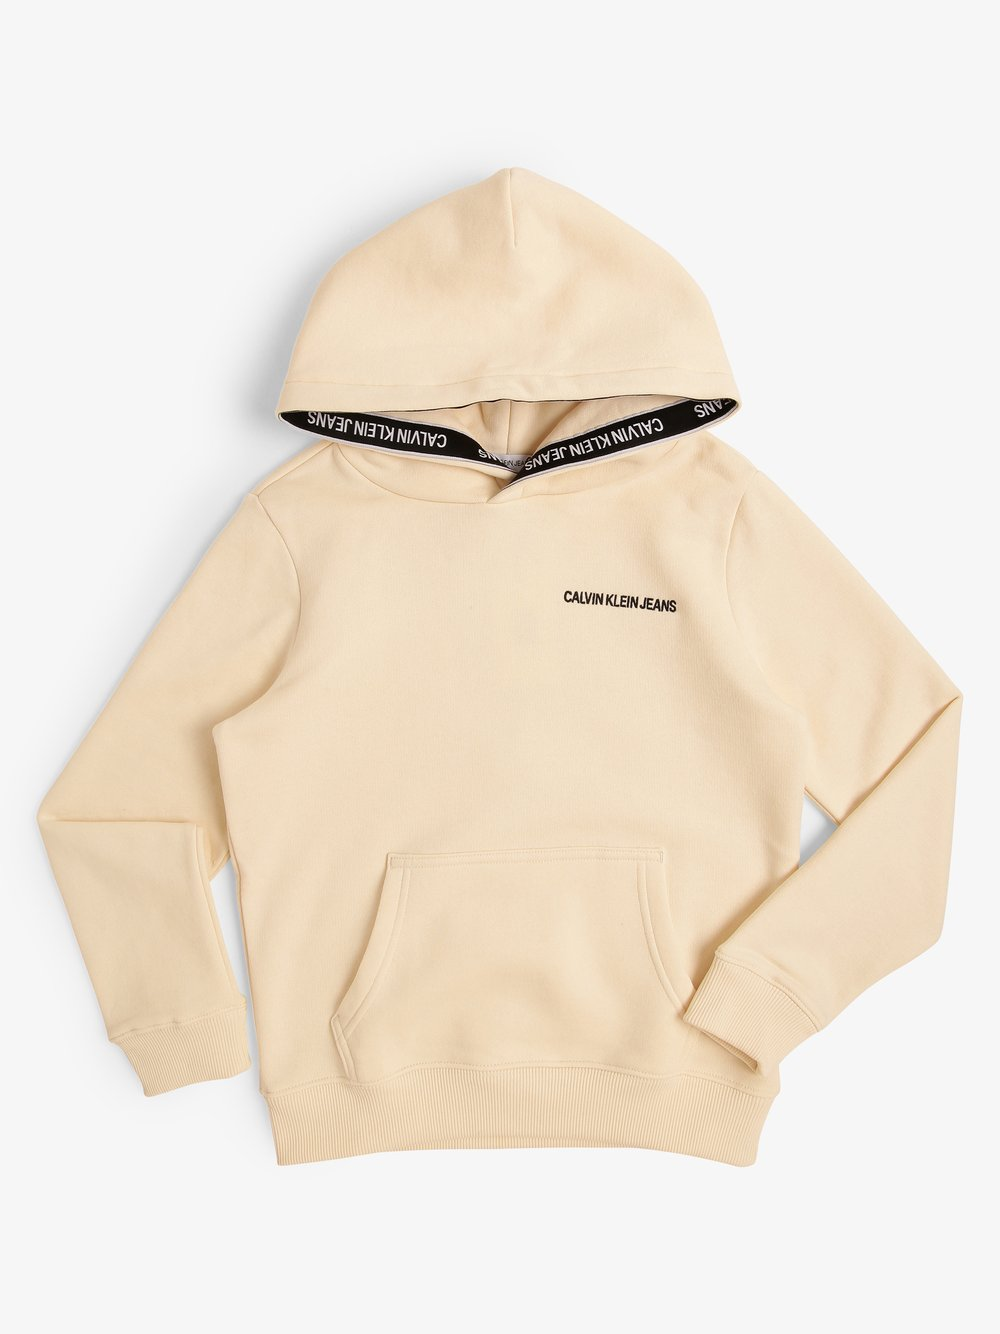 P&C Hoodie Pullover. XL